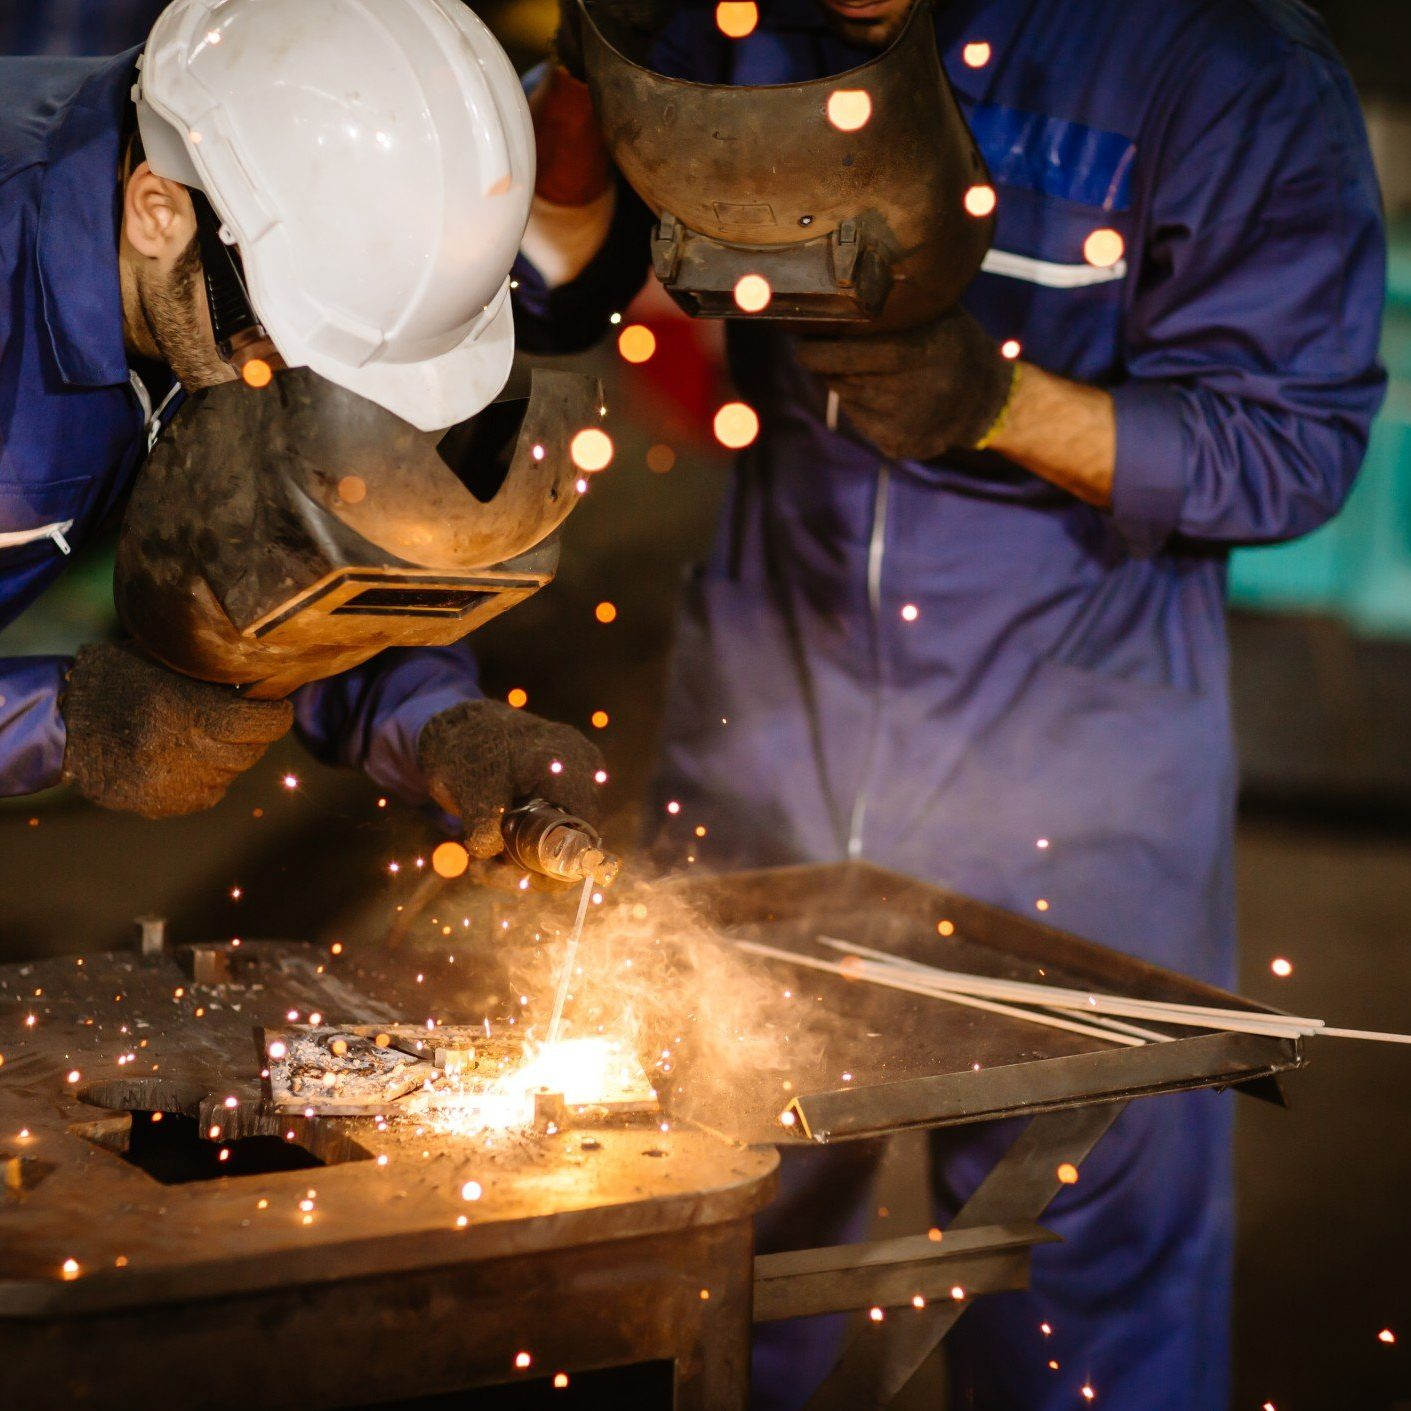 welding-hardhat-engineer-face-equipment-protection-manufacture-skill-large-handsome-workplace-hard_t20_A91OJK